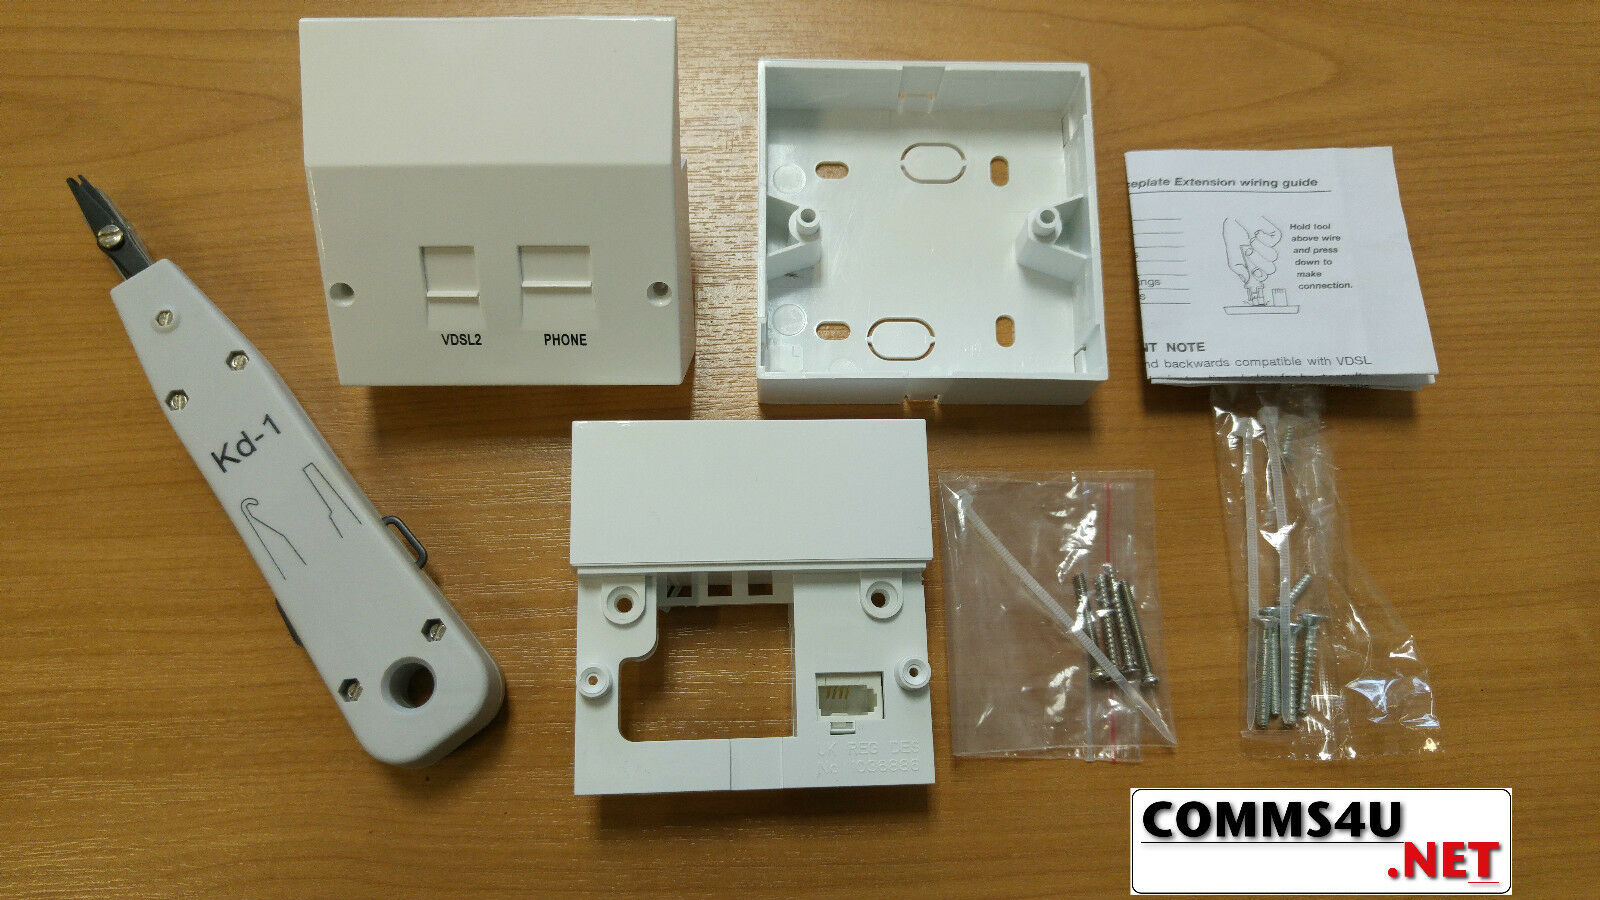 Bt Master Telephone Socket Vdsl Fibre Broadband Faceplate Complete Sockets Wiring 1 Of 4free Shipping